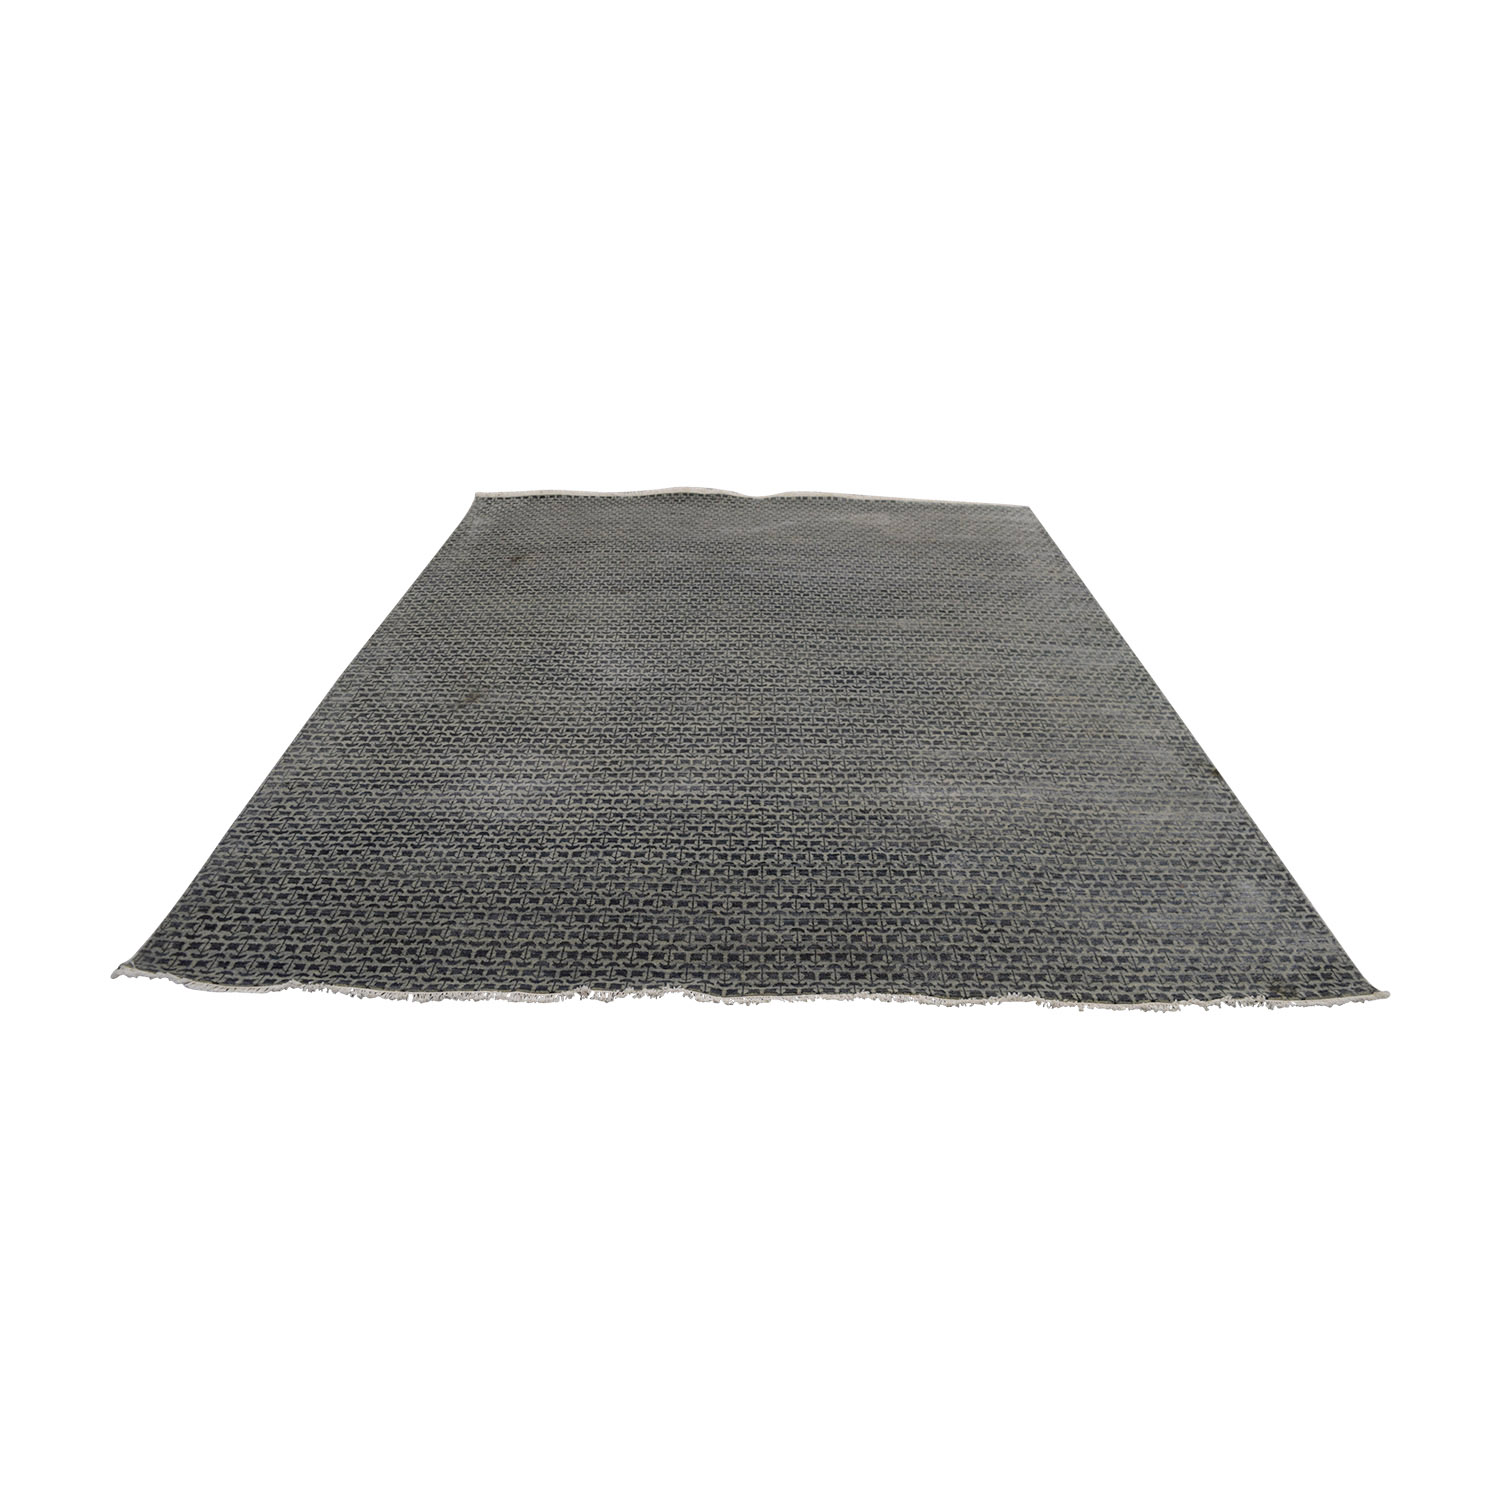 shop Obeetee Hand Knotted Blue Grey Wool Rug Obeetee